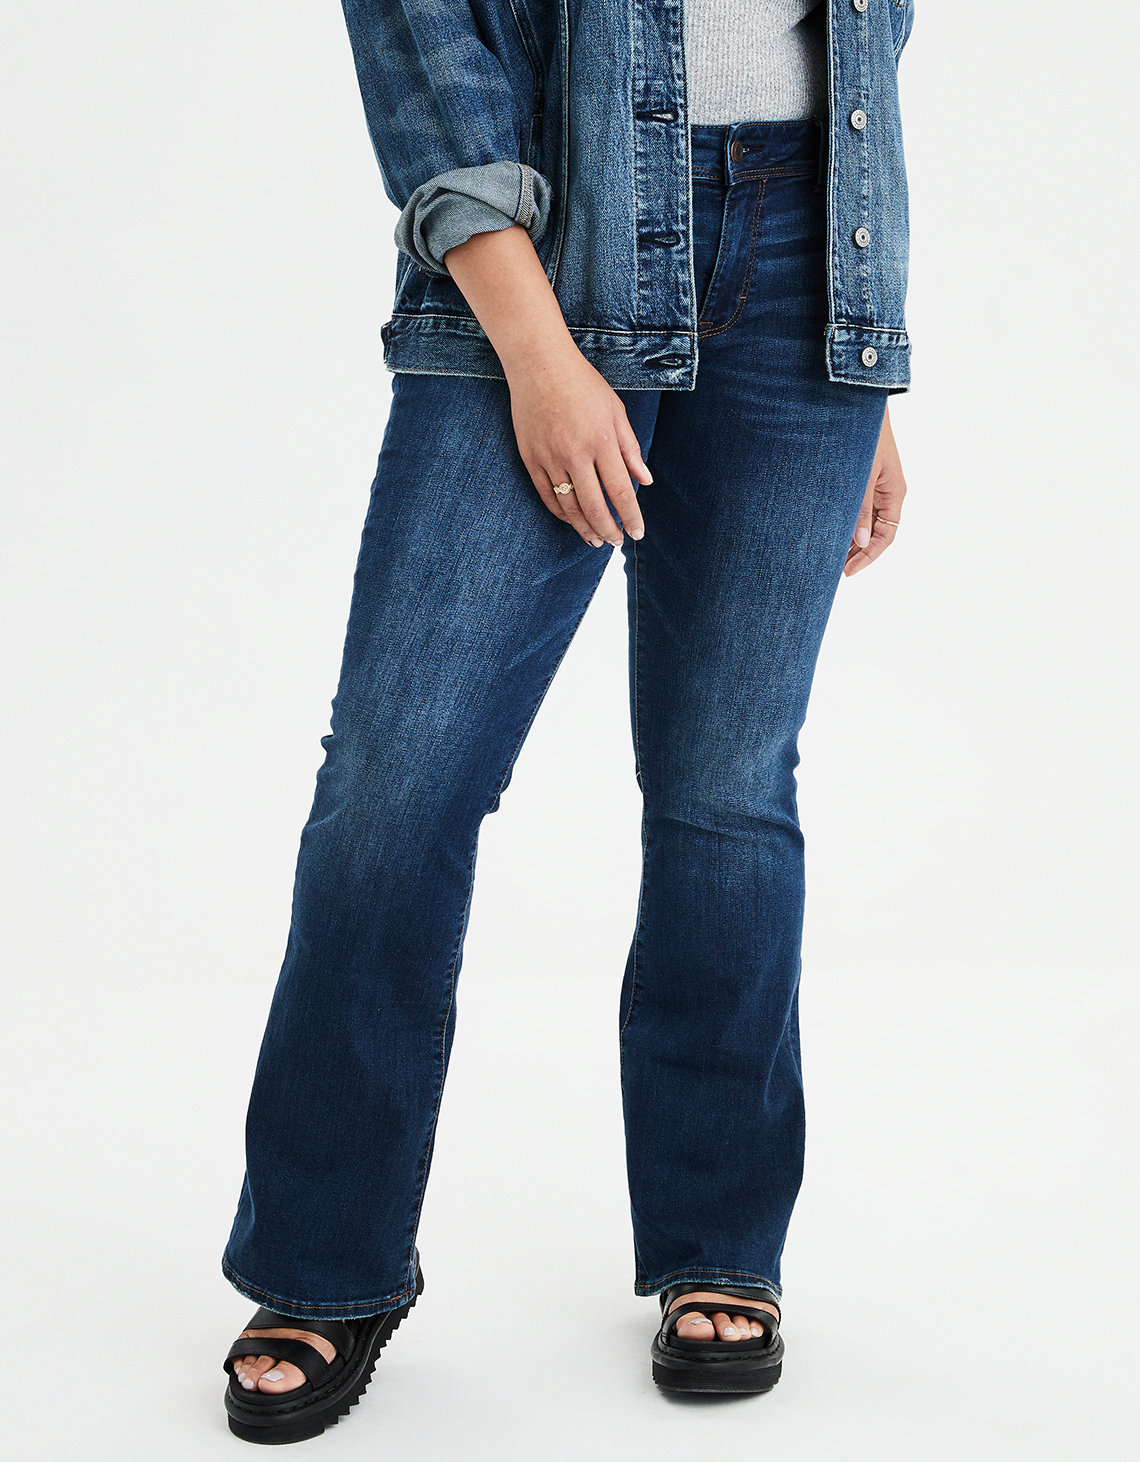 6301868ae01 Kick Bootcut Jean. Placeholder image. Product Image